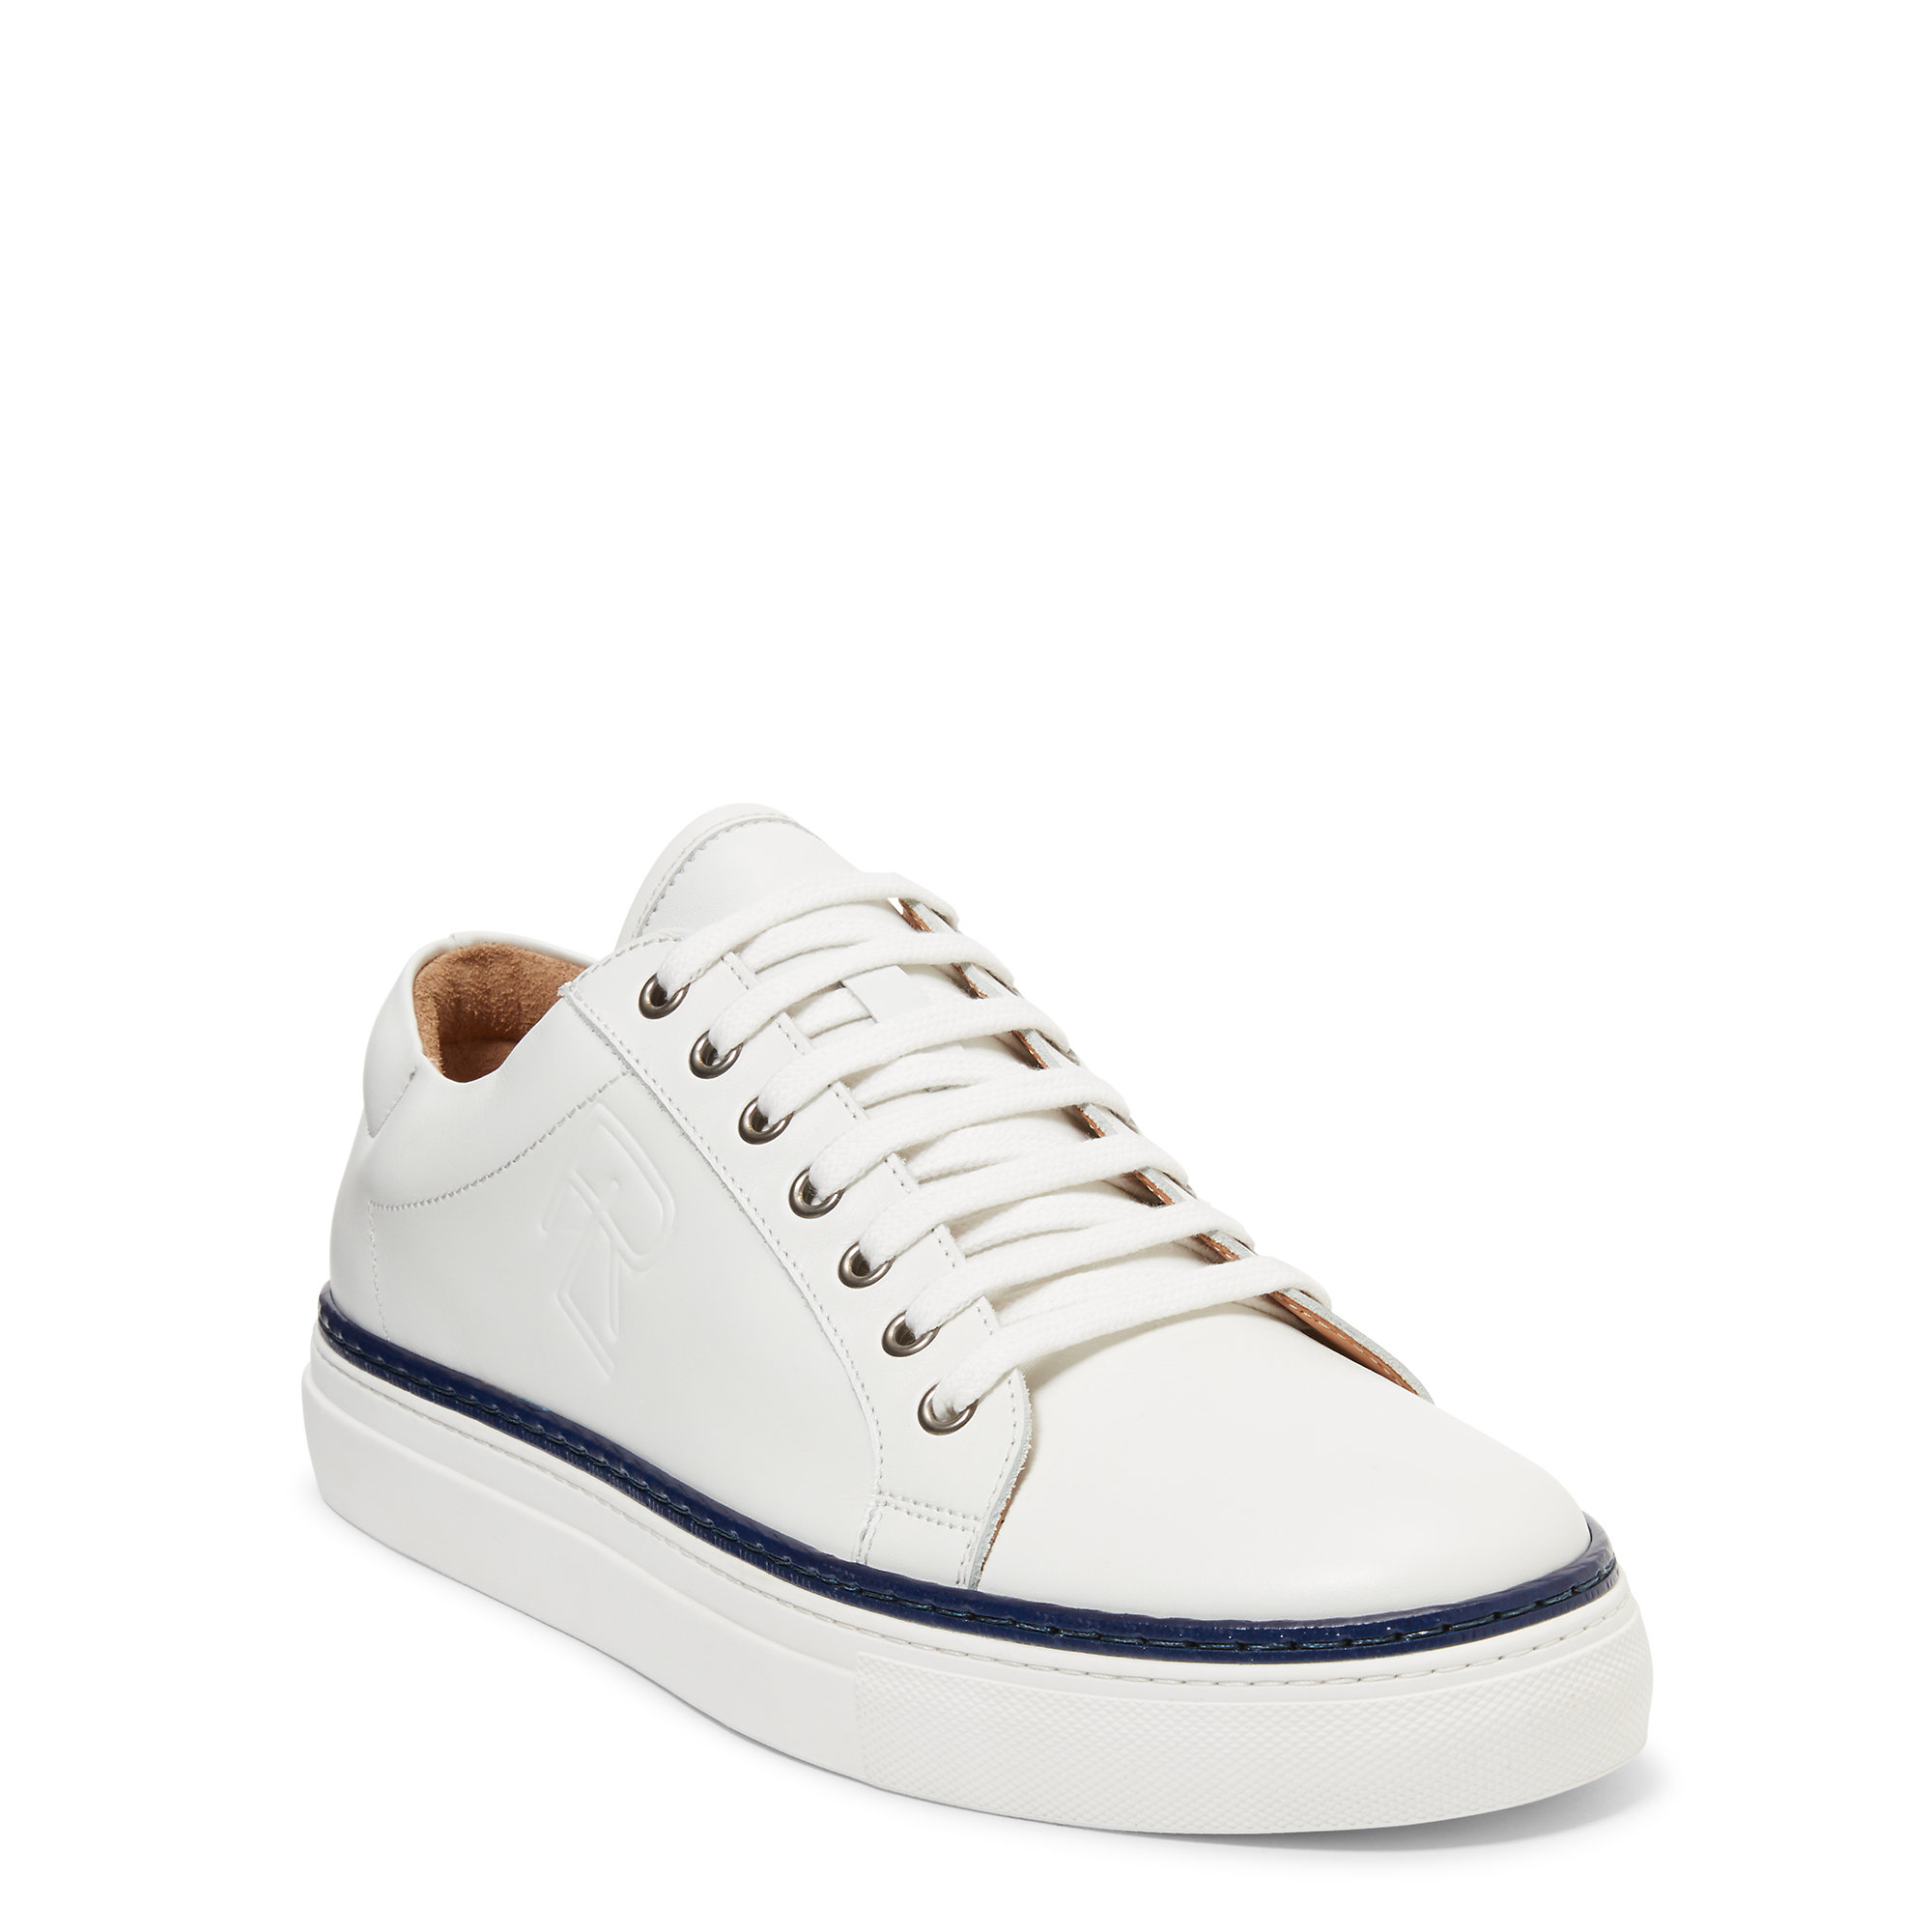 132d19ab92f53b pink ralph lauren trainers pony shoes for boys | Rigolade